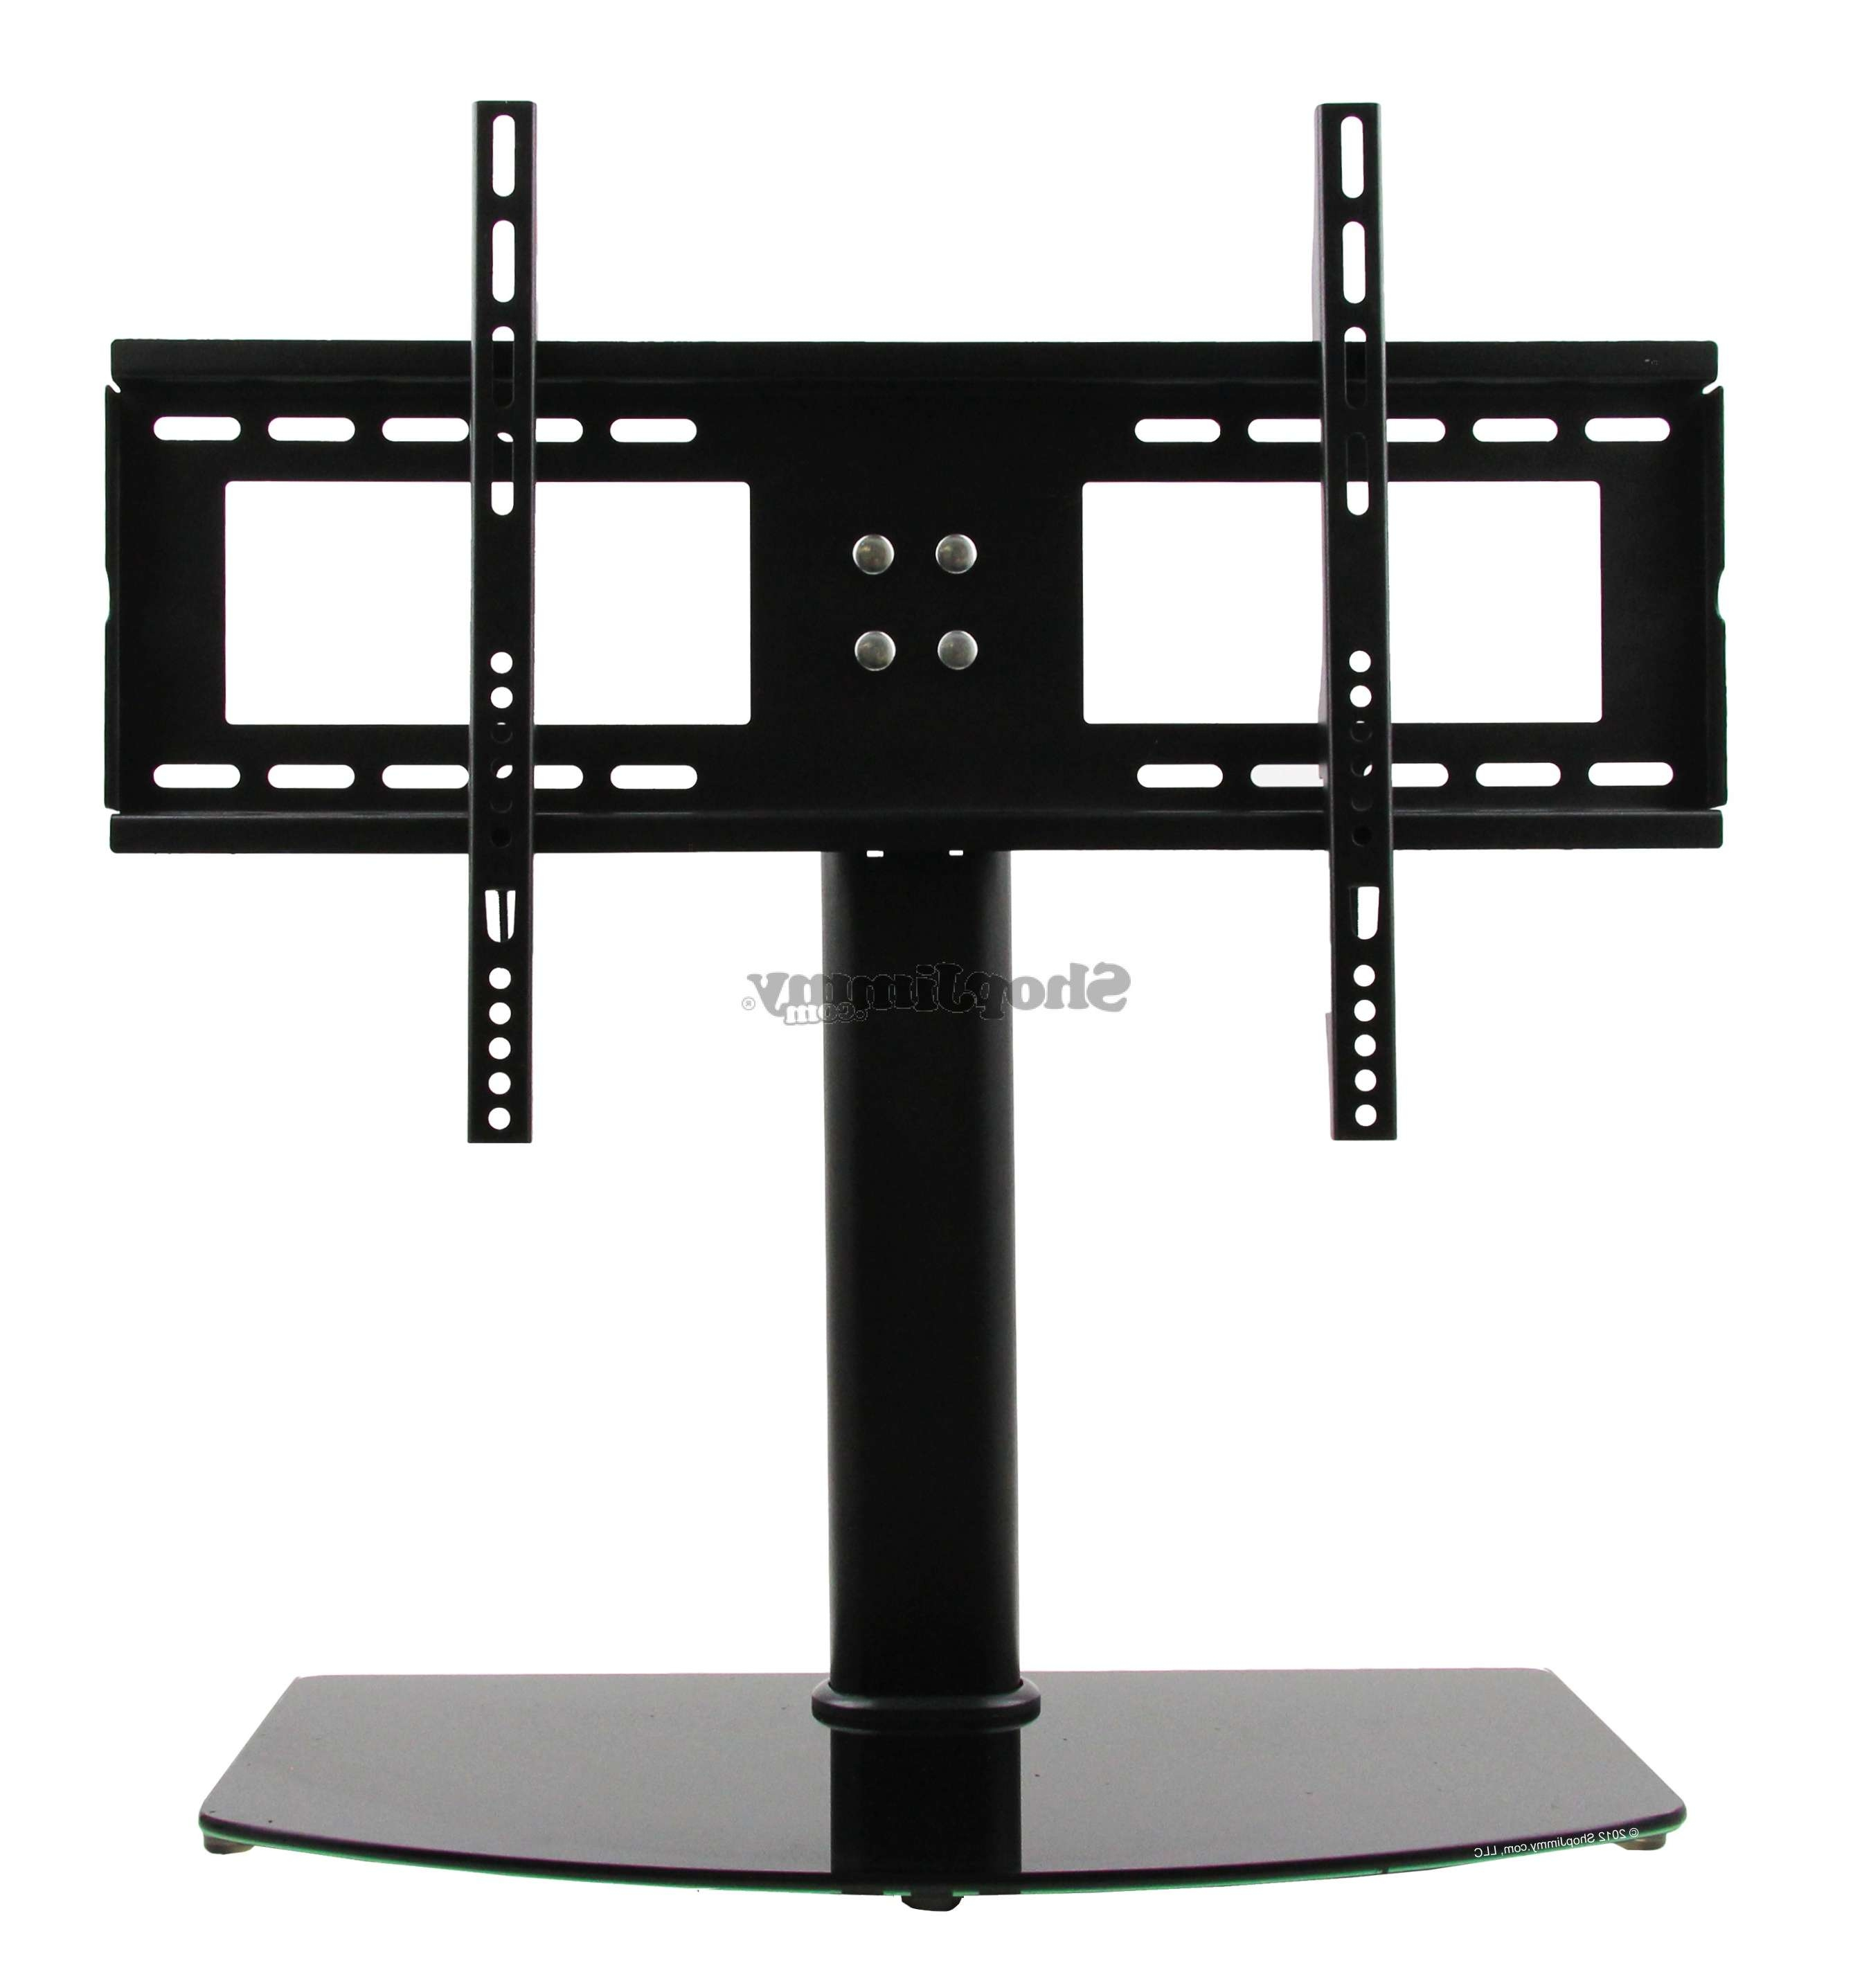 "Universal Tv Stand/base + Wall Mount For 37"" 55"" Flat Screen Tvs Inside Universal 24 Inch Tv Stands (Gallery 1 of 15)"